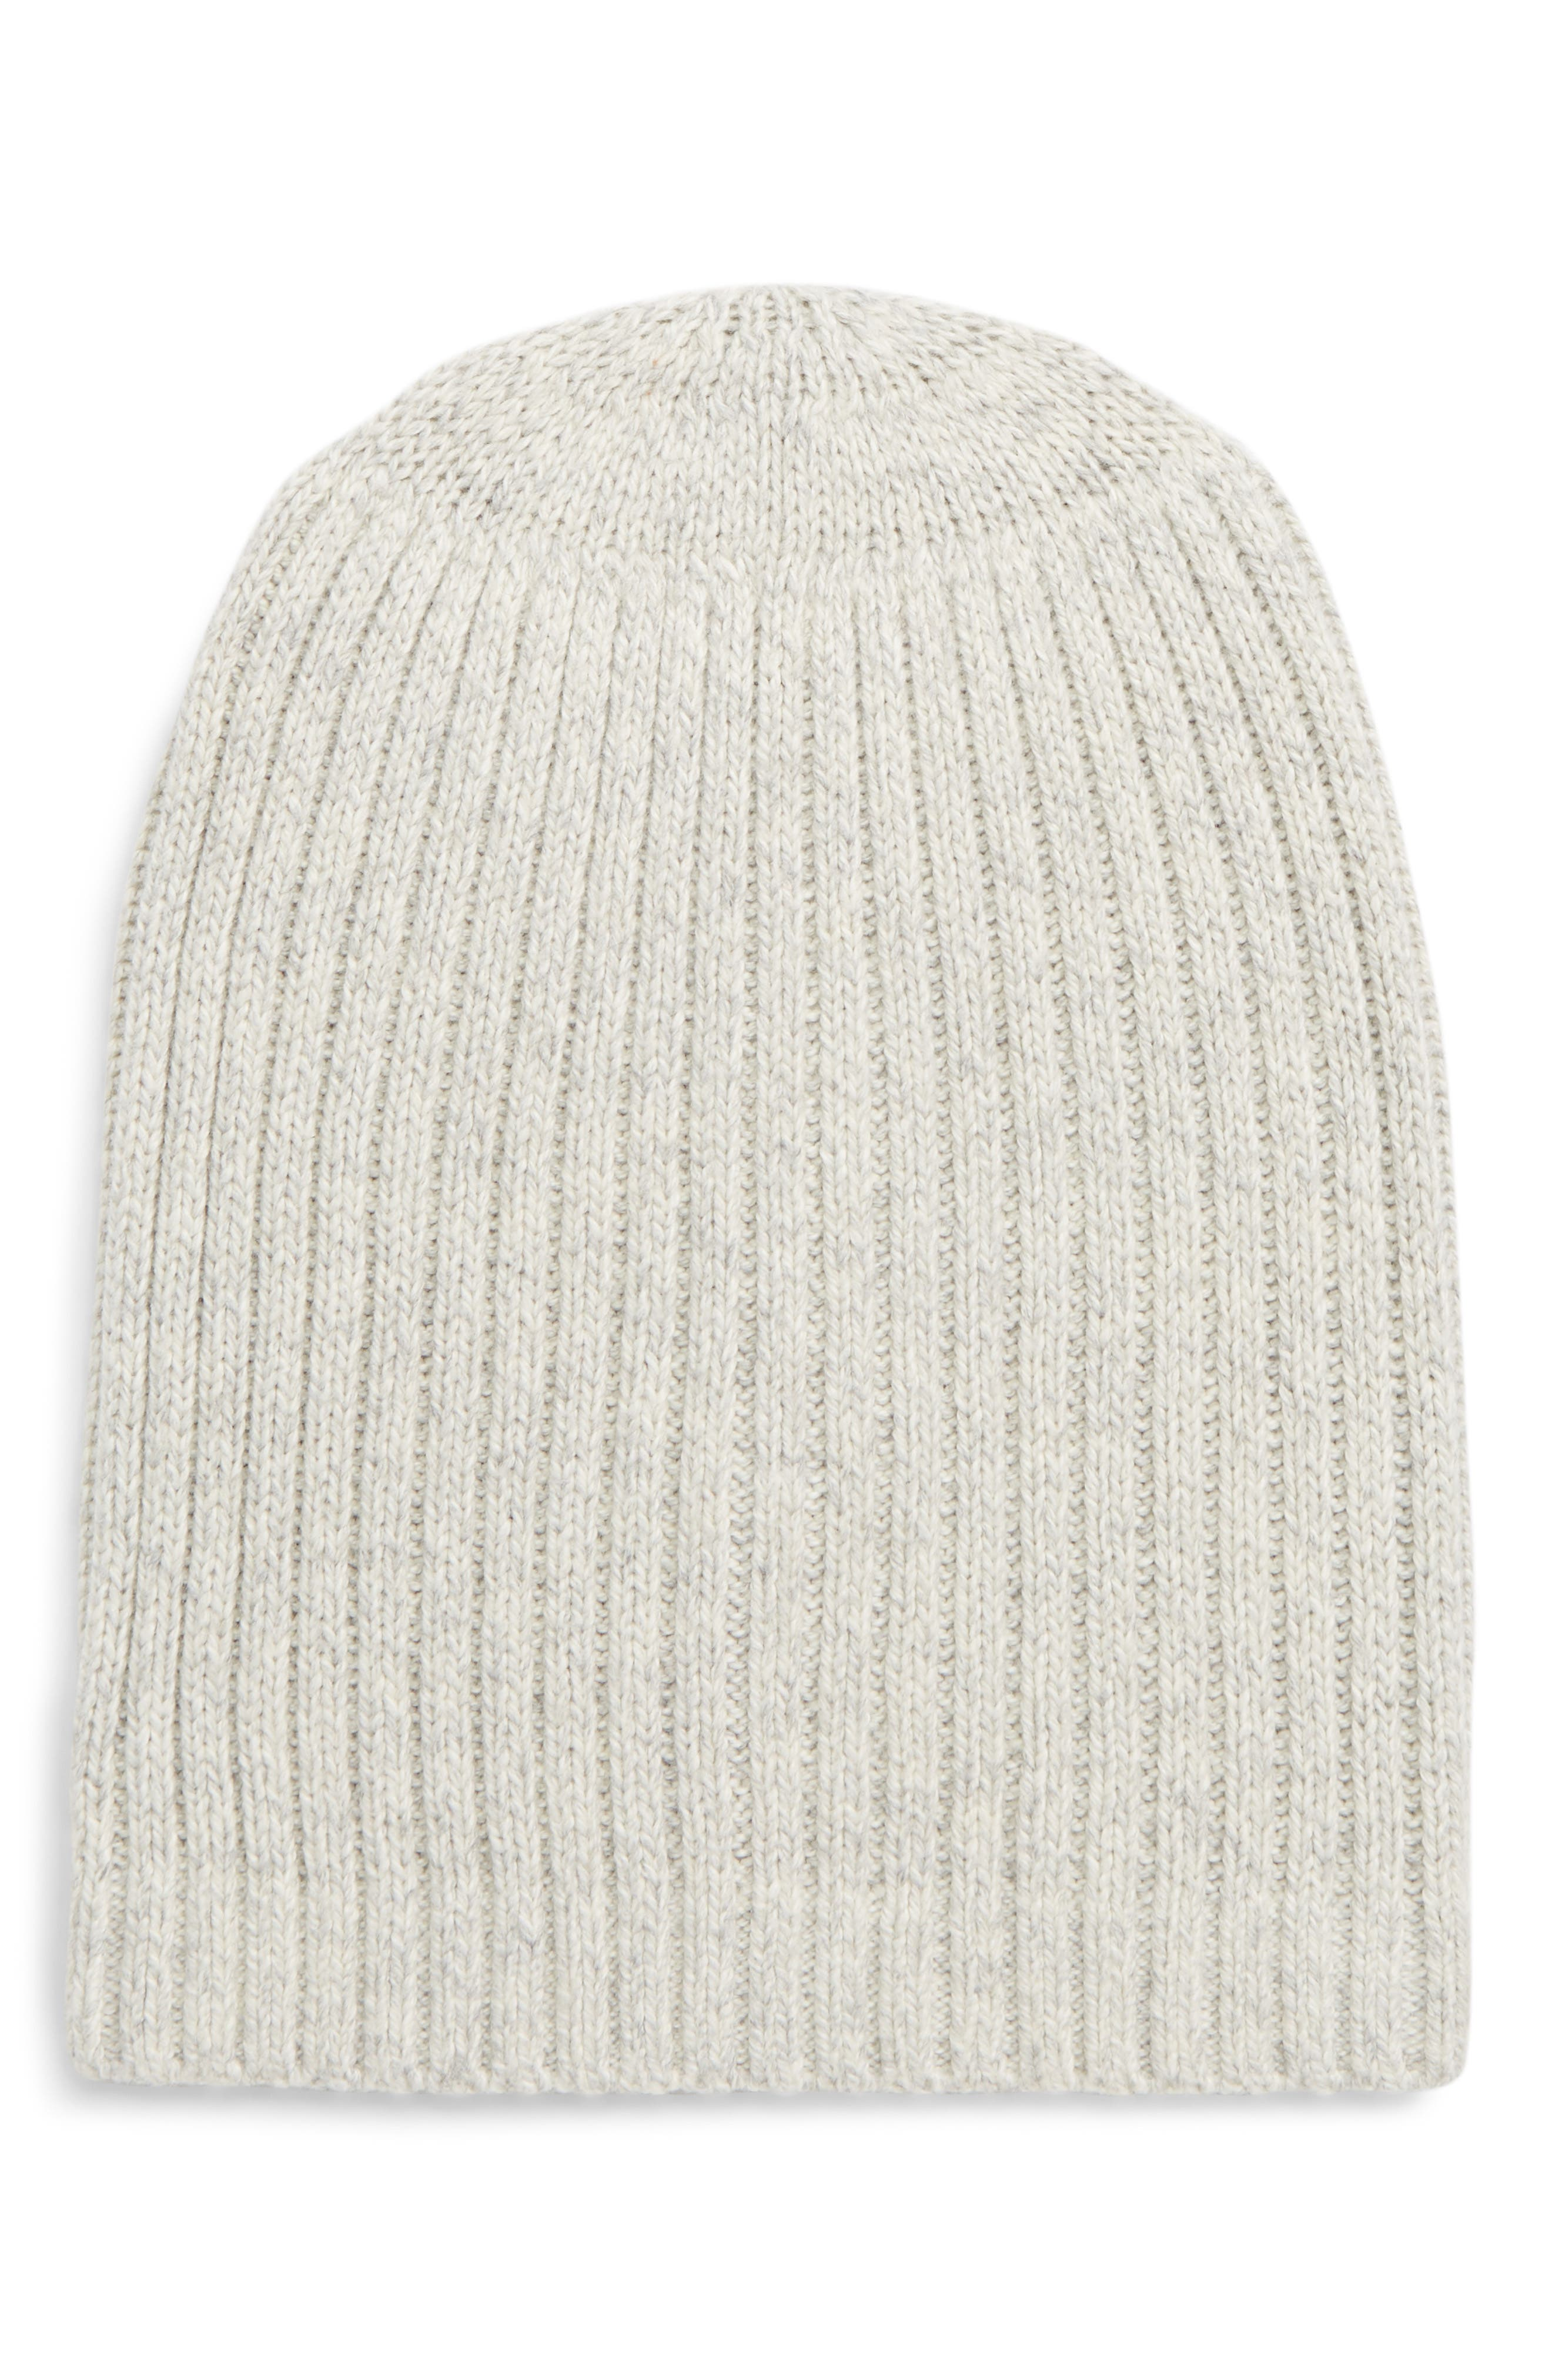 MADEWELL Perfect Textured Rib Beanie, Main, color, 020